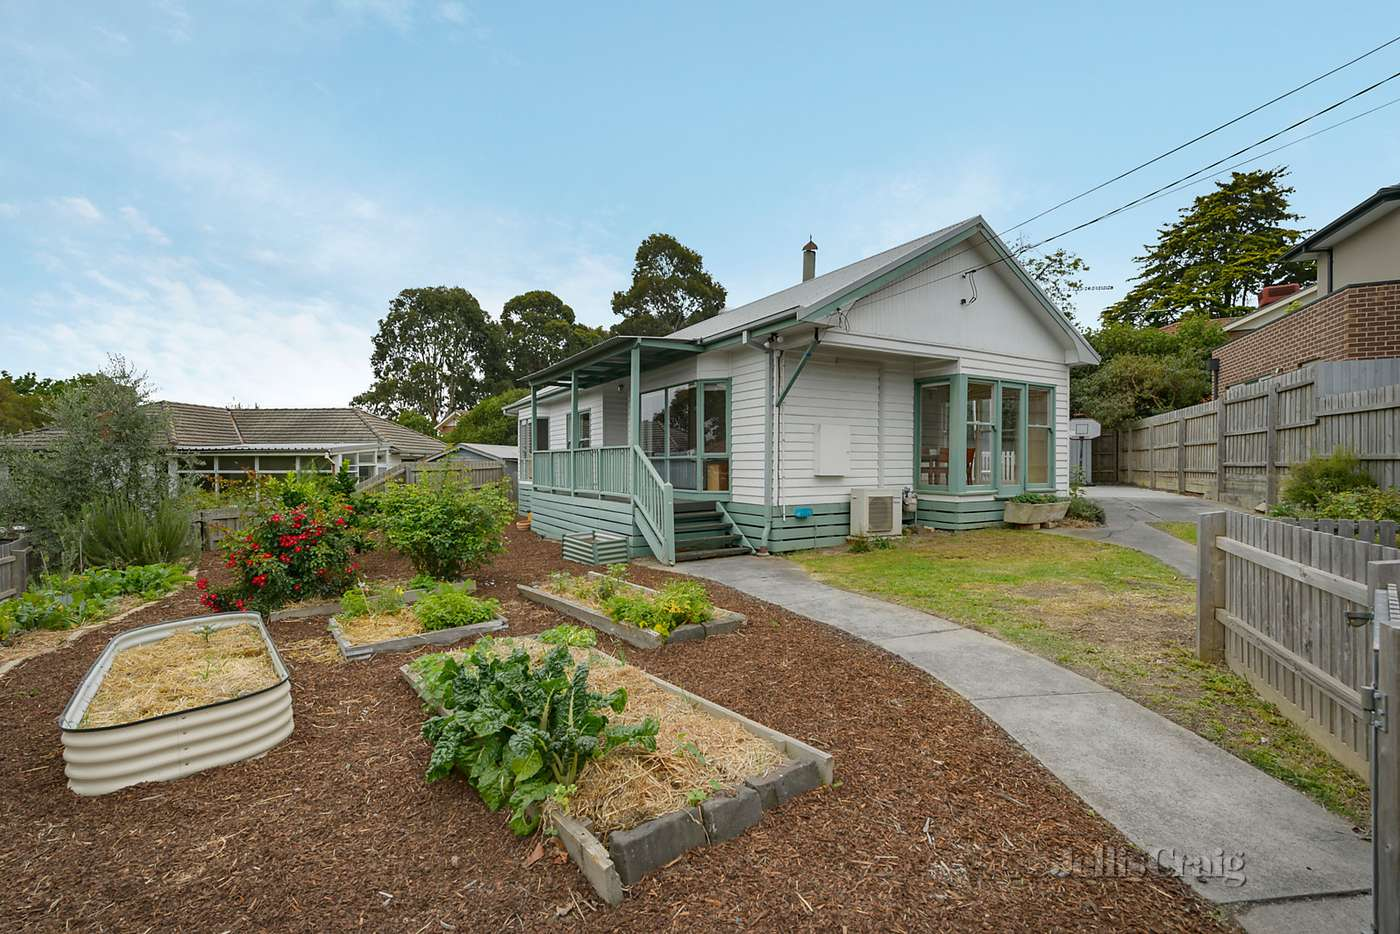 Main view of Homely house listing, 3 Olympic Court, Forest Hill VIC 3131